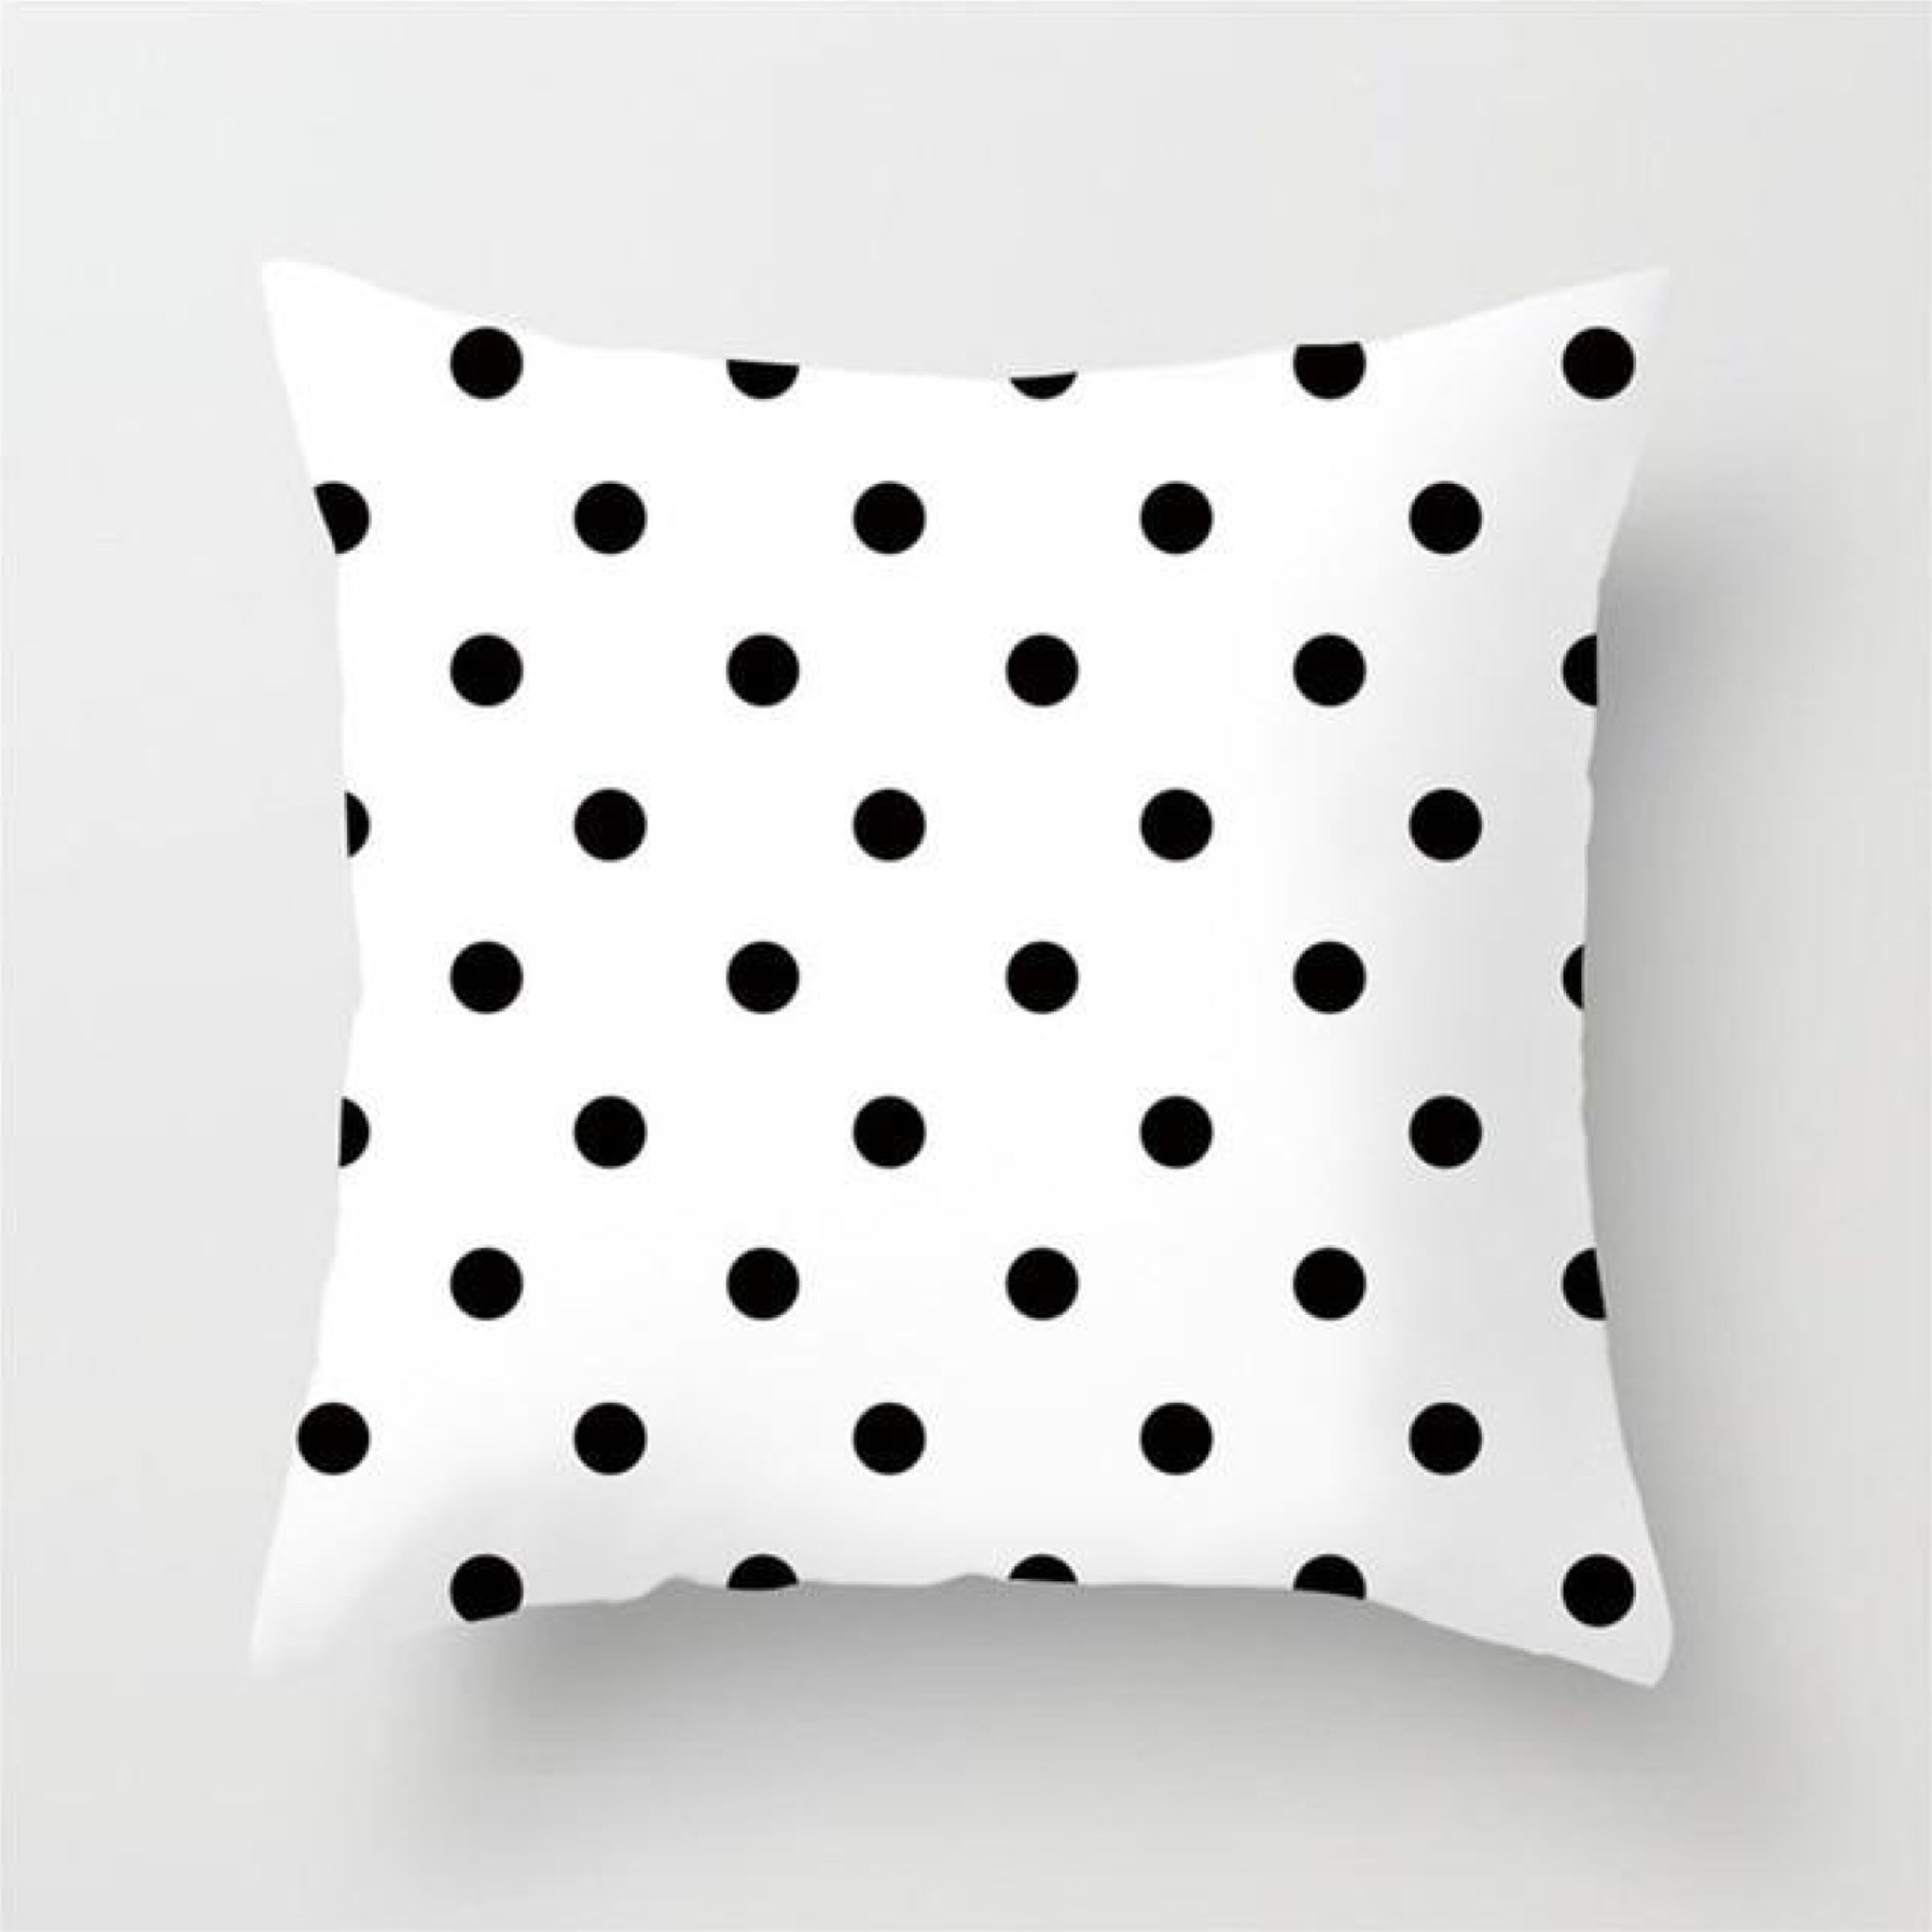 Polka Dot Cushion Cover Black and White Print Pillow Case For Home Chair Sofa Decoration Pillowcases Covers 45cm*45cm Trend